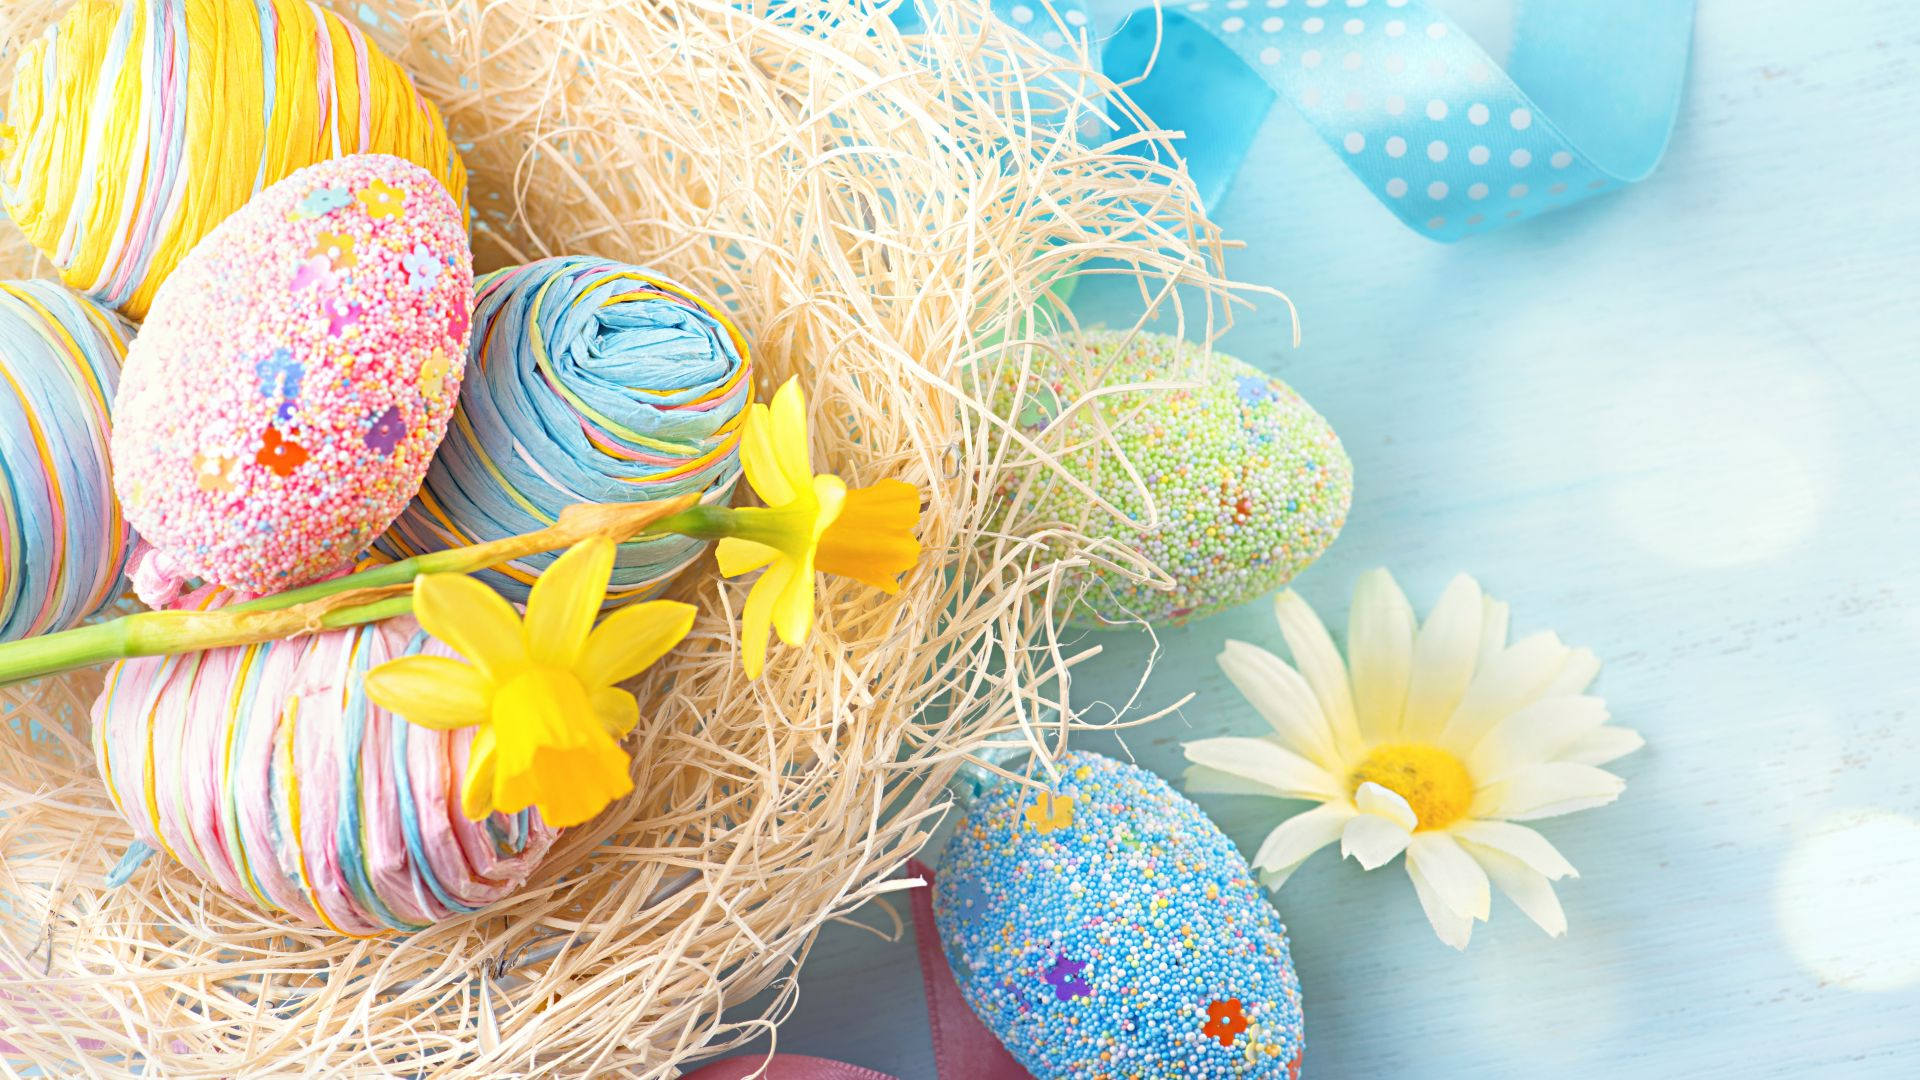 Пасха, Easter, eggs, flower, 8k (horizontal)